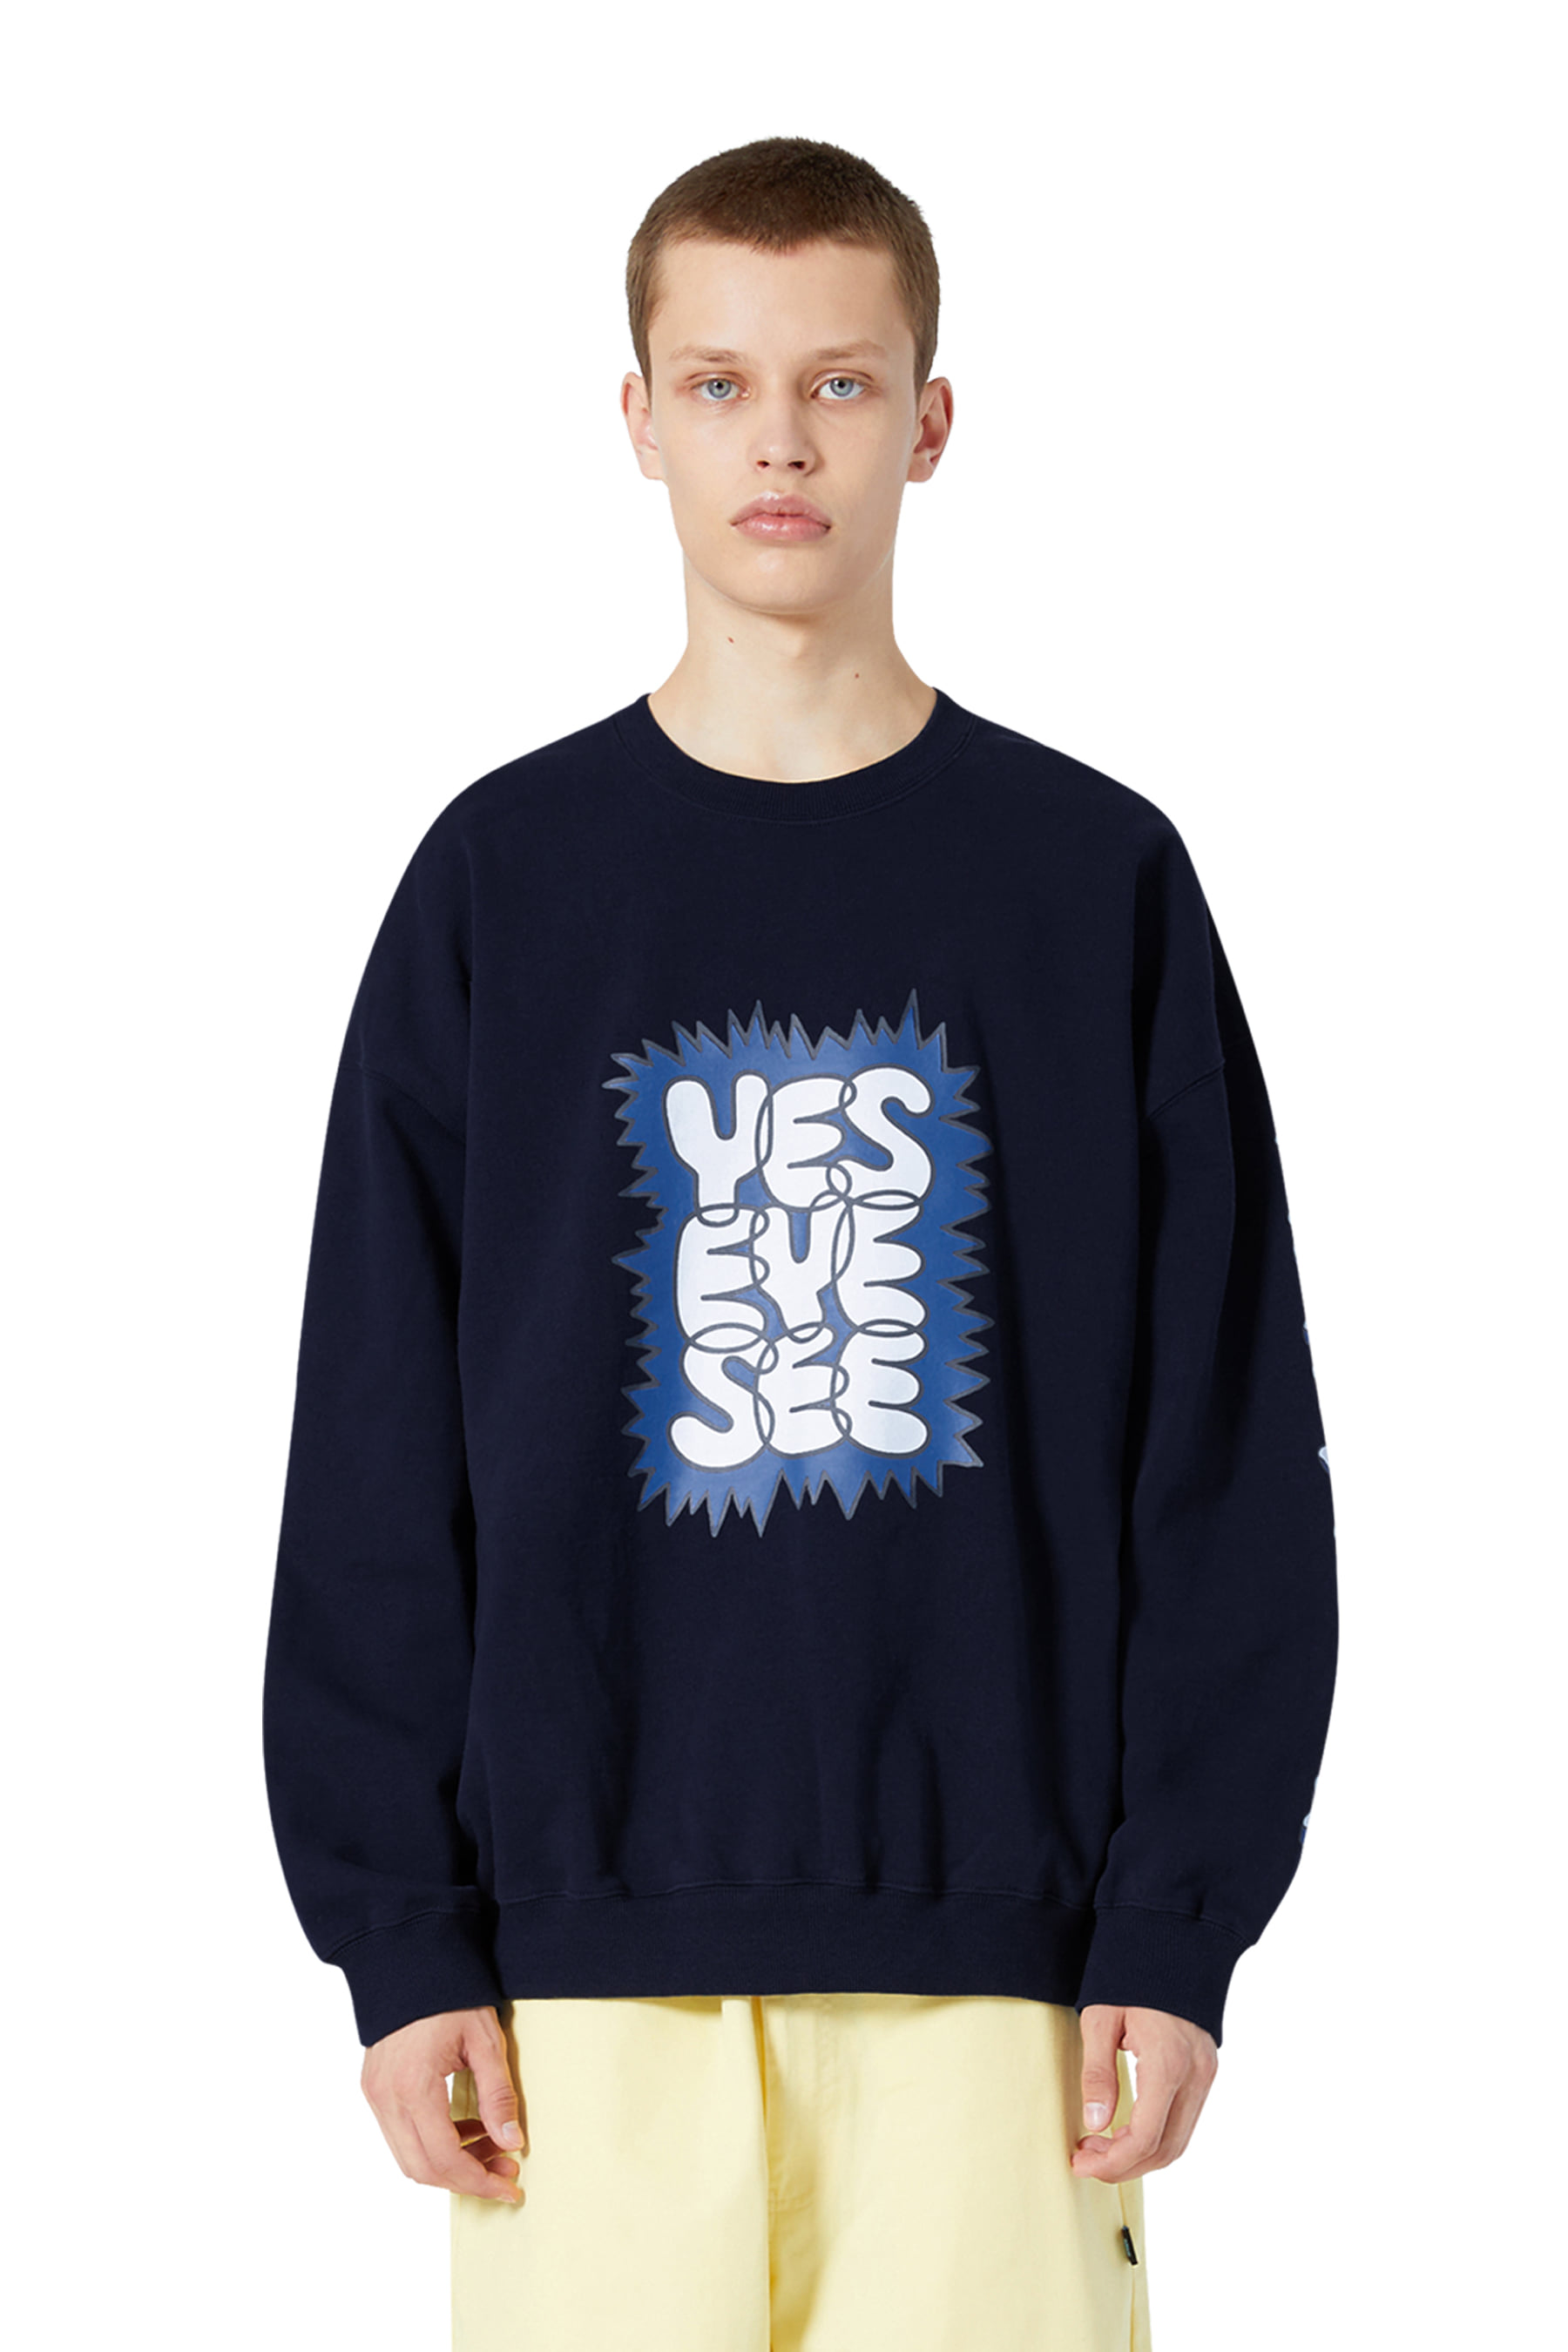 Acid Sweatshirts Navy